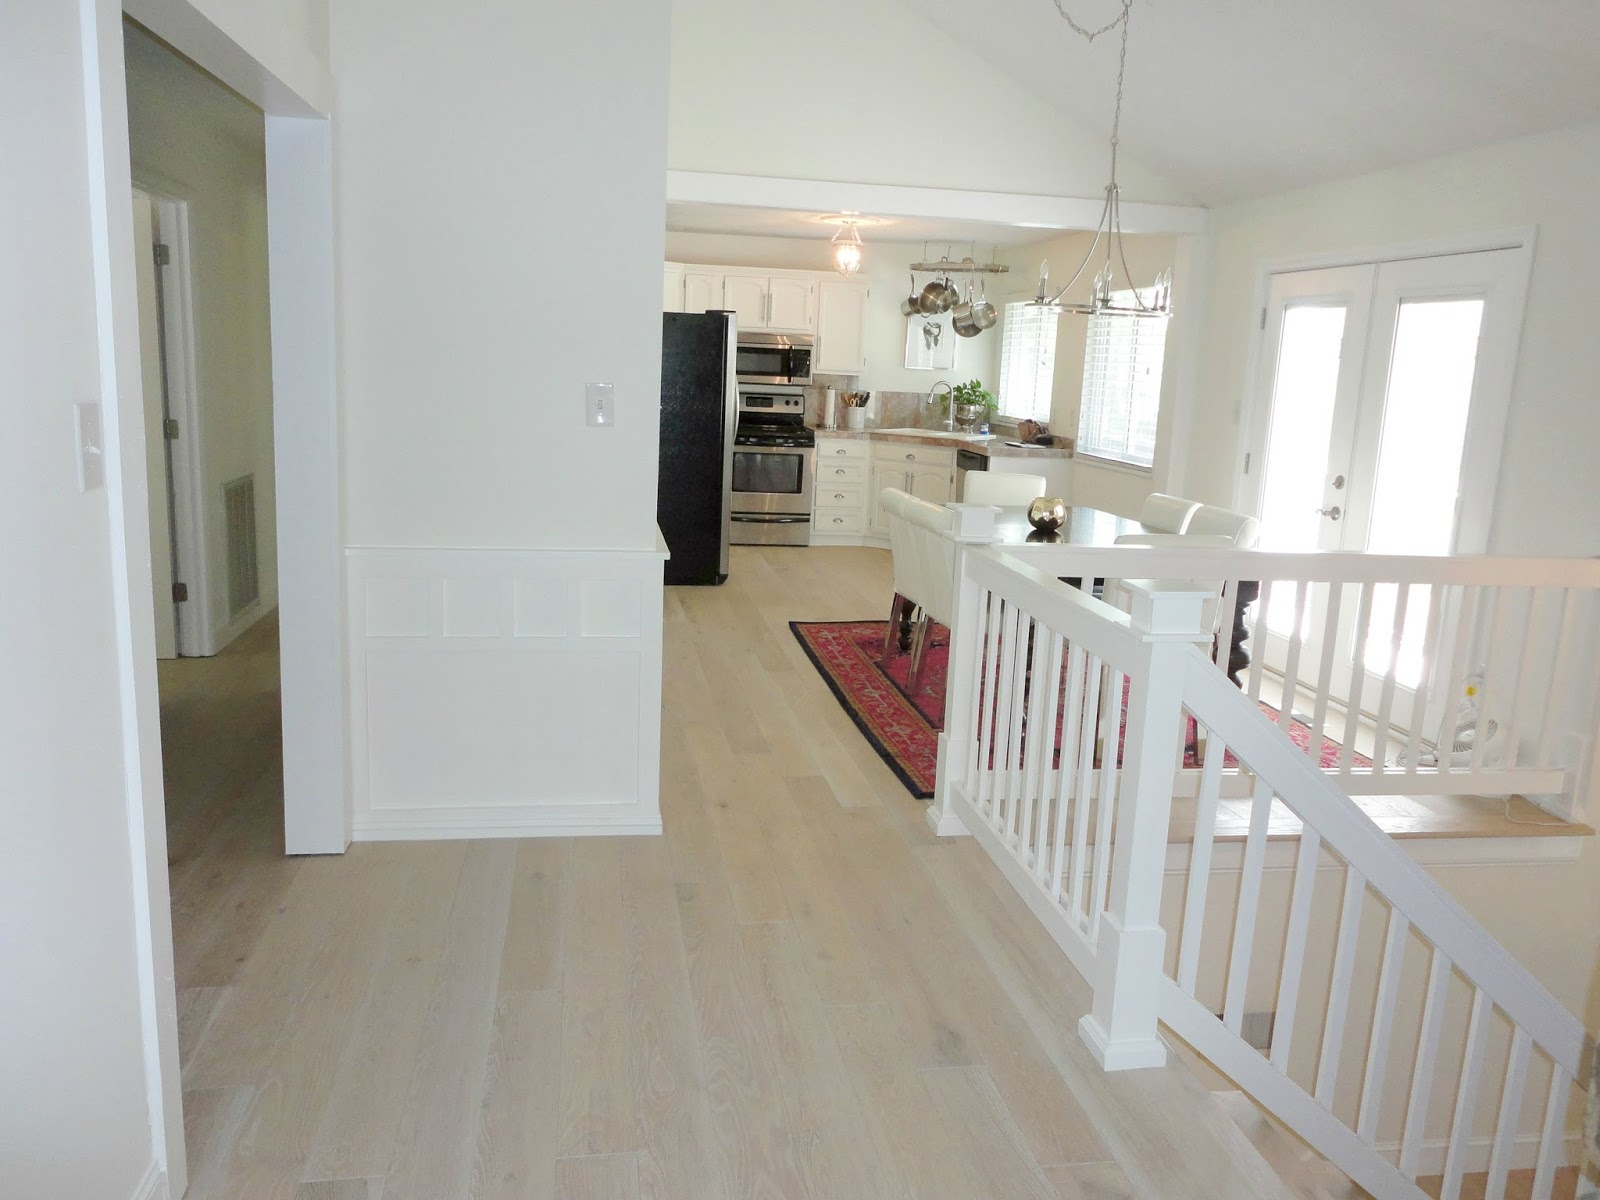 Whitewash Wood Floors on current interior design trends 2015